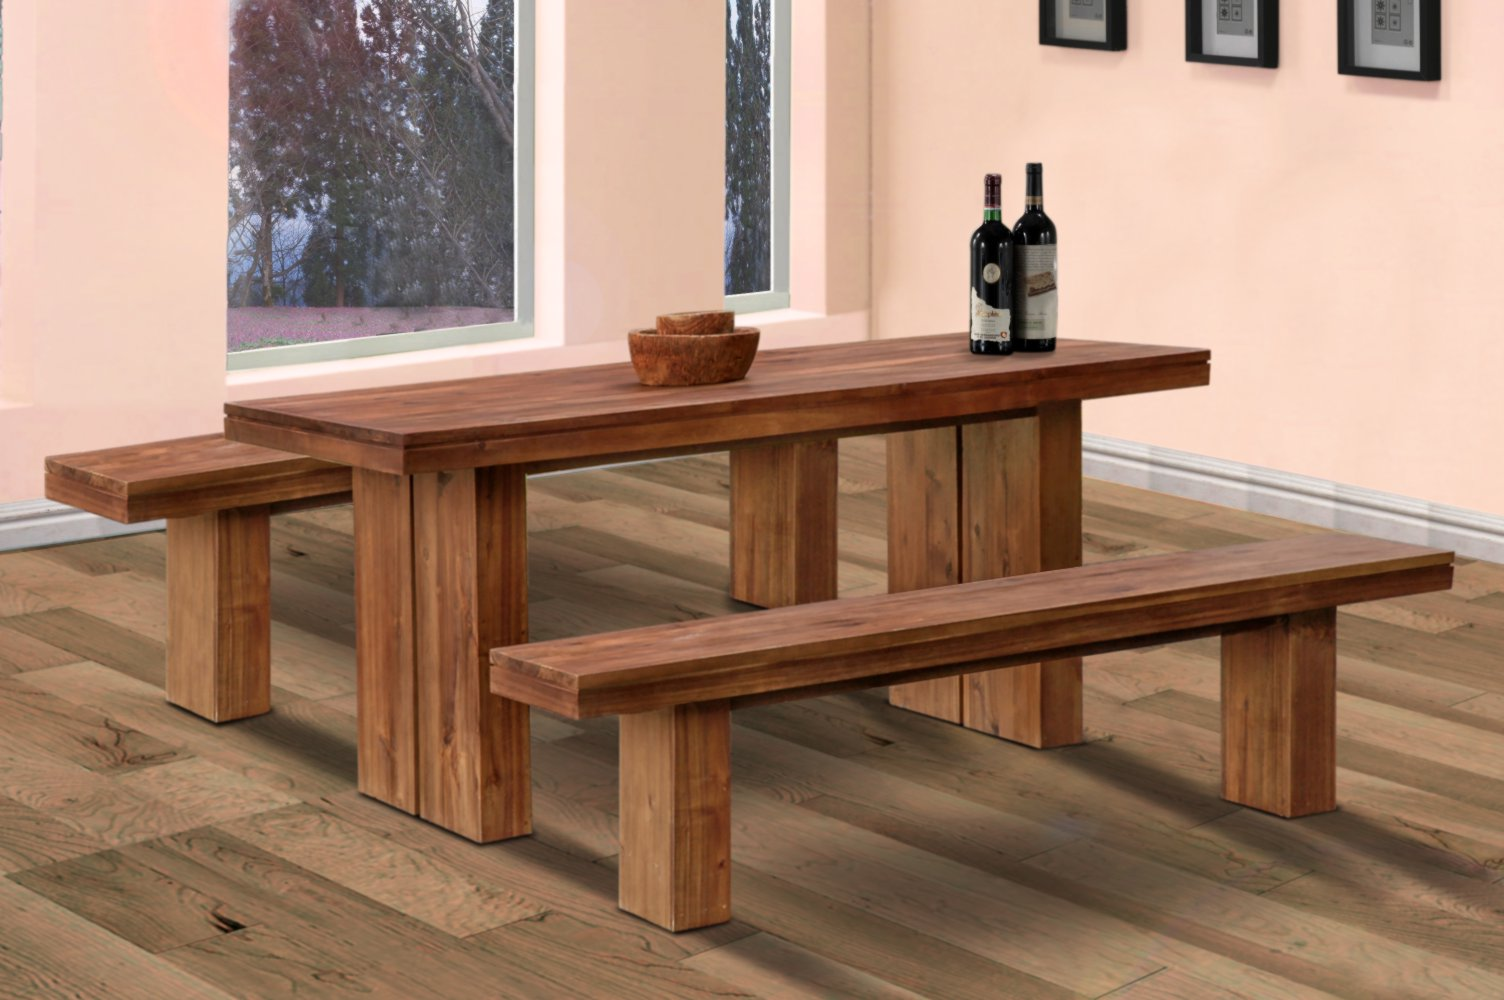 Danielle dining table and bench java valentti for Dining table with bench